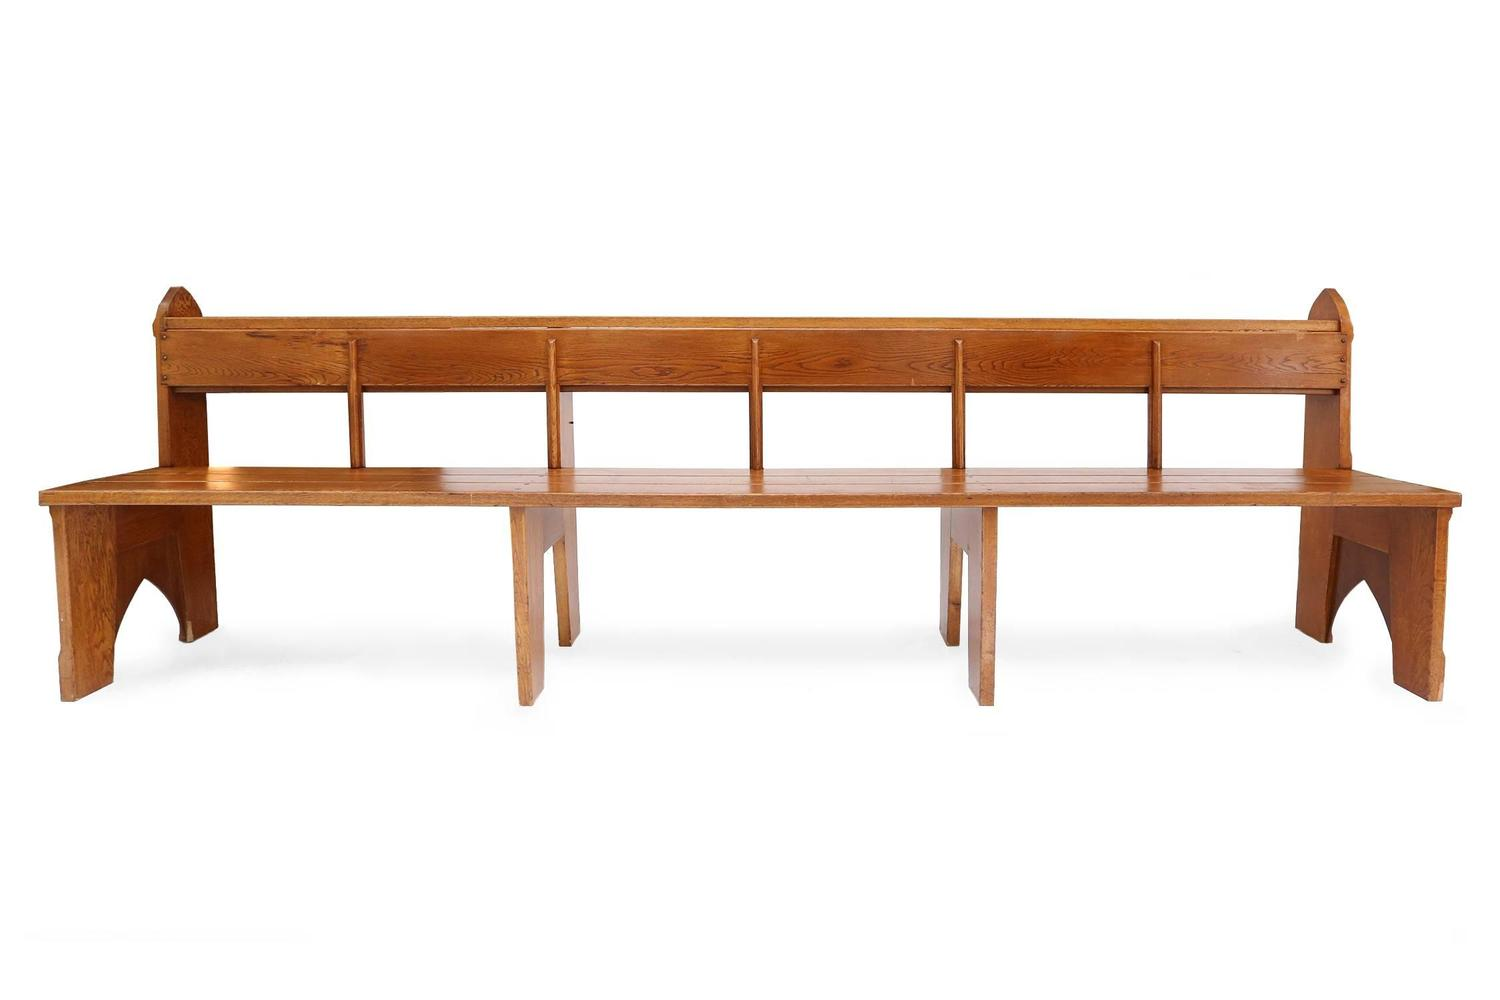 Vt Wonen Wandplank.Amsterdam School Style Art Deco Oak Benches 1 For Sale At 1stdibs